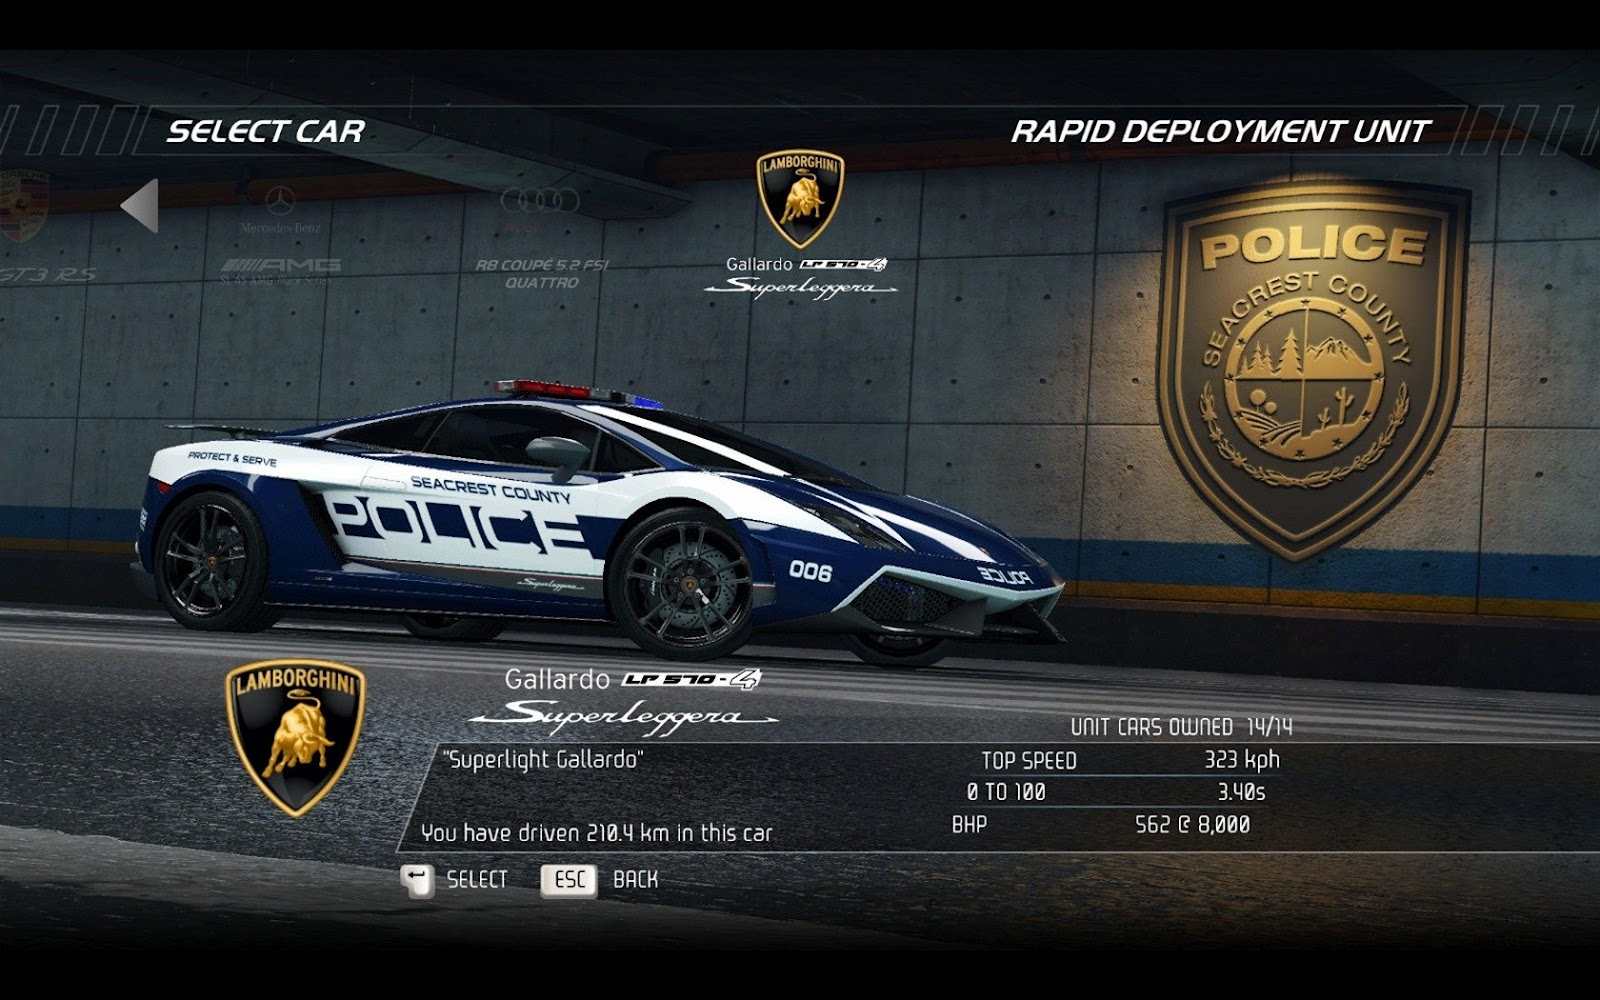 Nfs Hot Pursuit Lamborghini Gallardo Police Car Game Wallpaper